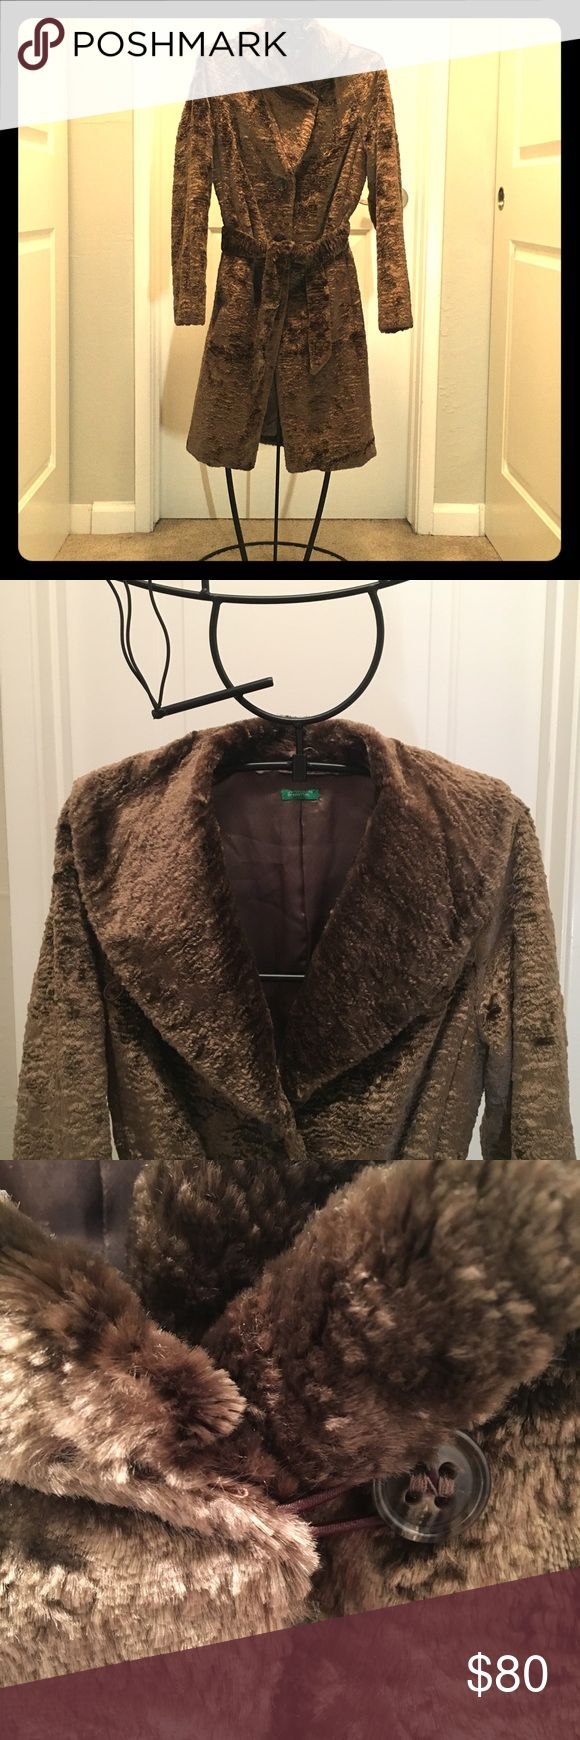 Benneton Faux Sheared Lamb Coat Astonishingly warm and cozy coat. It's the softest thing we've ever touched. Shawl collar is adjustable, as pictured. Varies between brown and notes of gold, depending on which way the fur is smoothed down. 67% viscose and 33% cotton. Gently used with no defects. ✨ We're happy to negotiate the price! United Colors Of Benetton Jackets & Coats